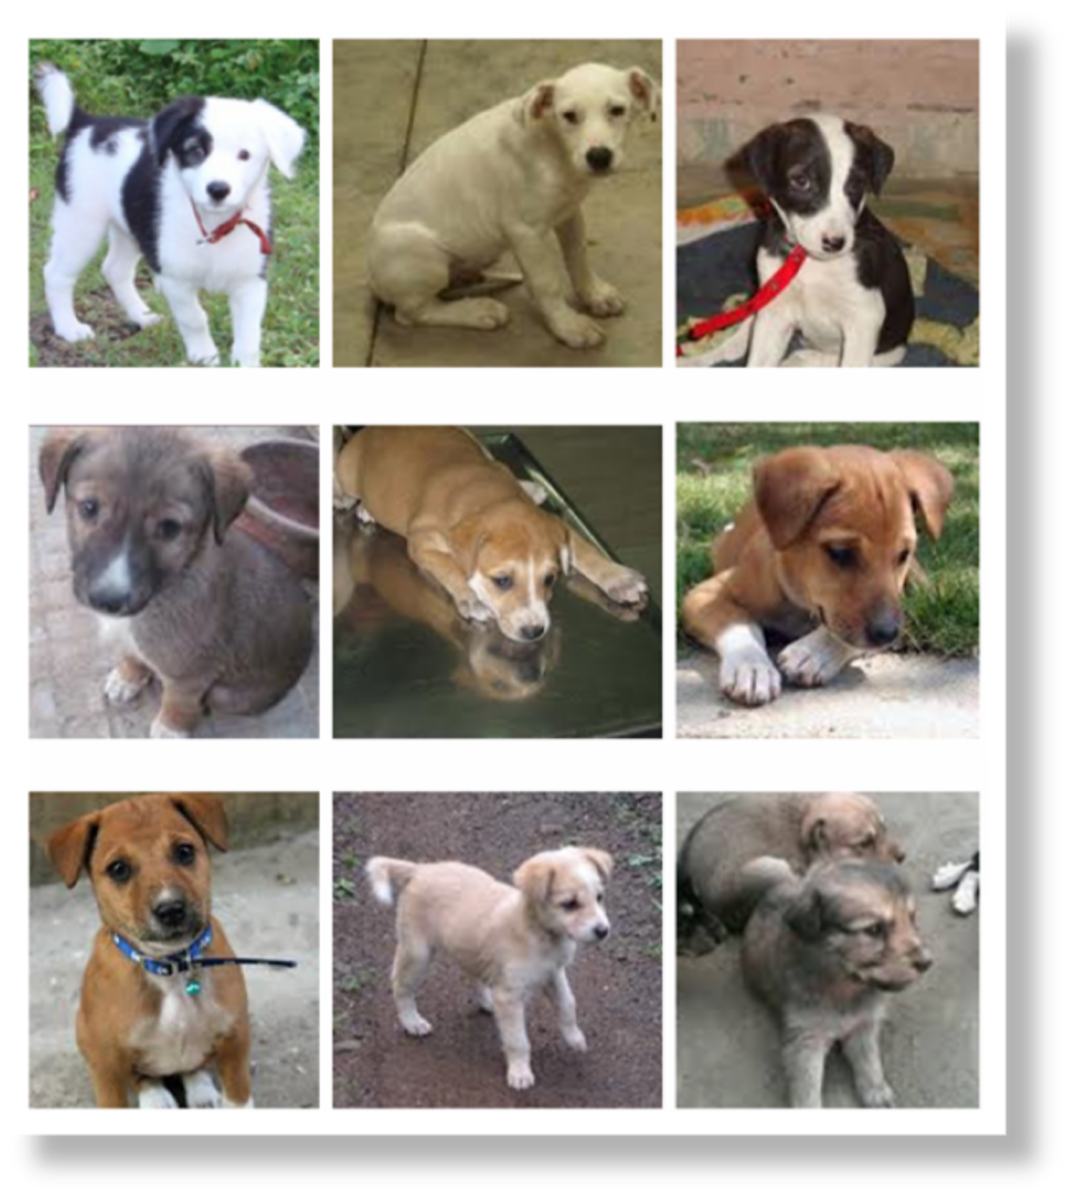 Pariah Puppies, advertised online for Adoption.